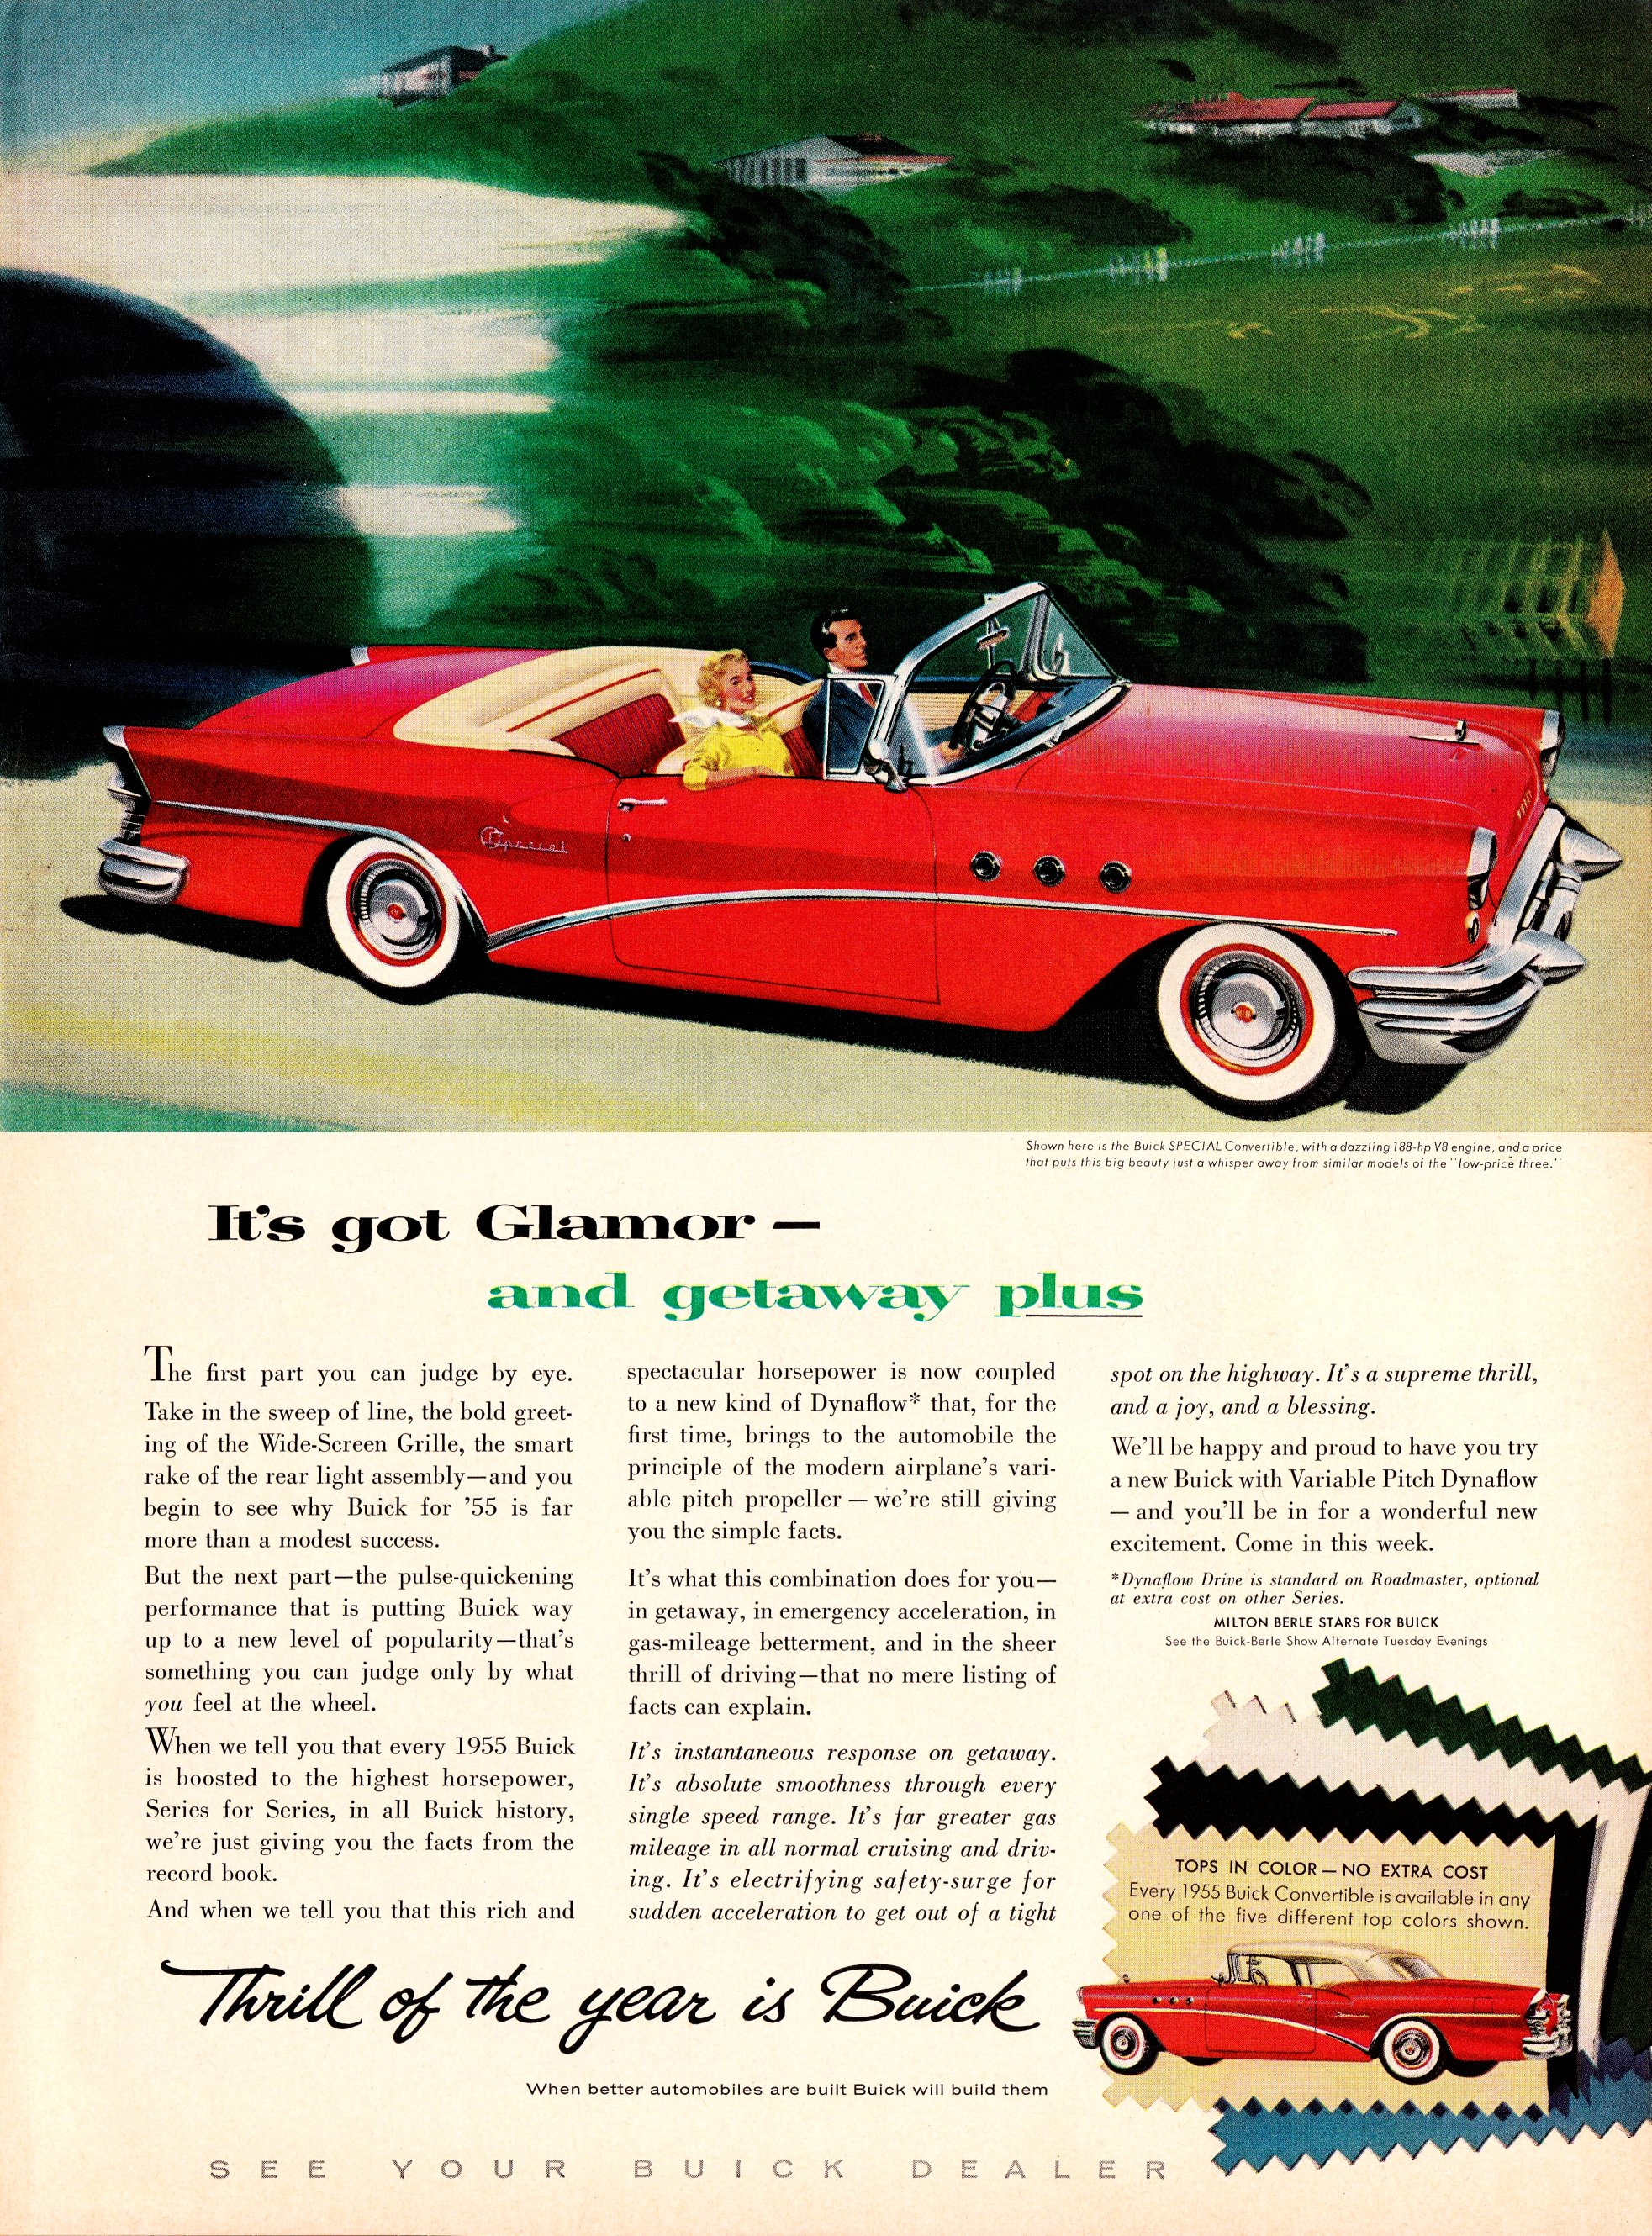 1955 Buick Special Convertible - published in Life - March 7, 1955